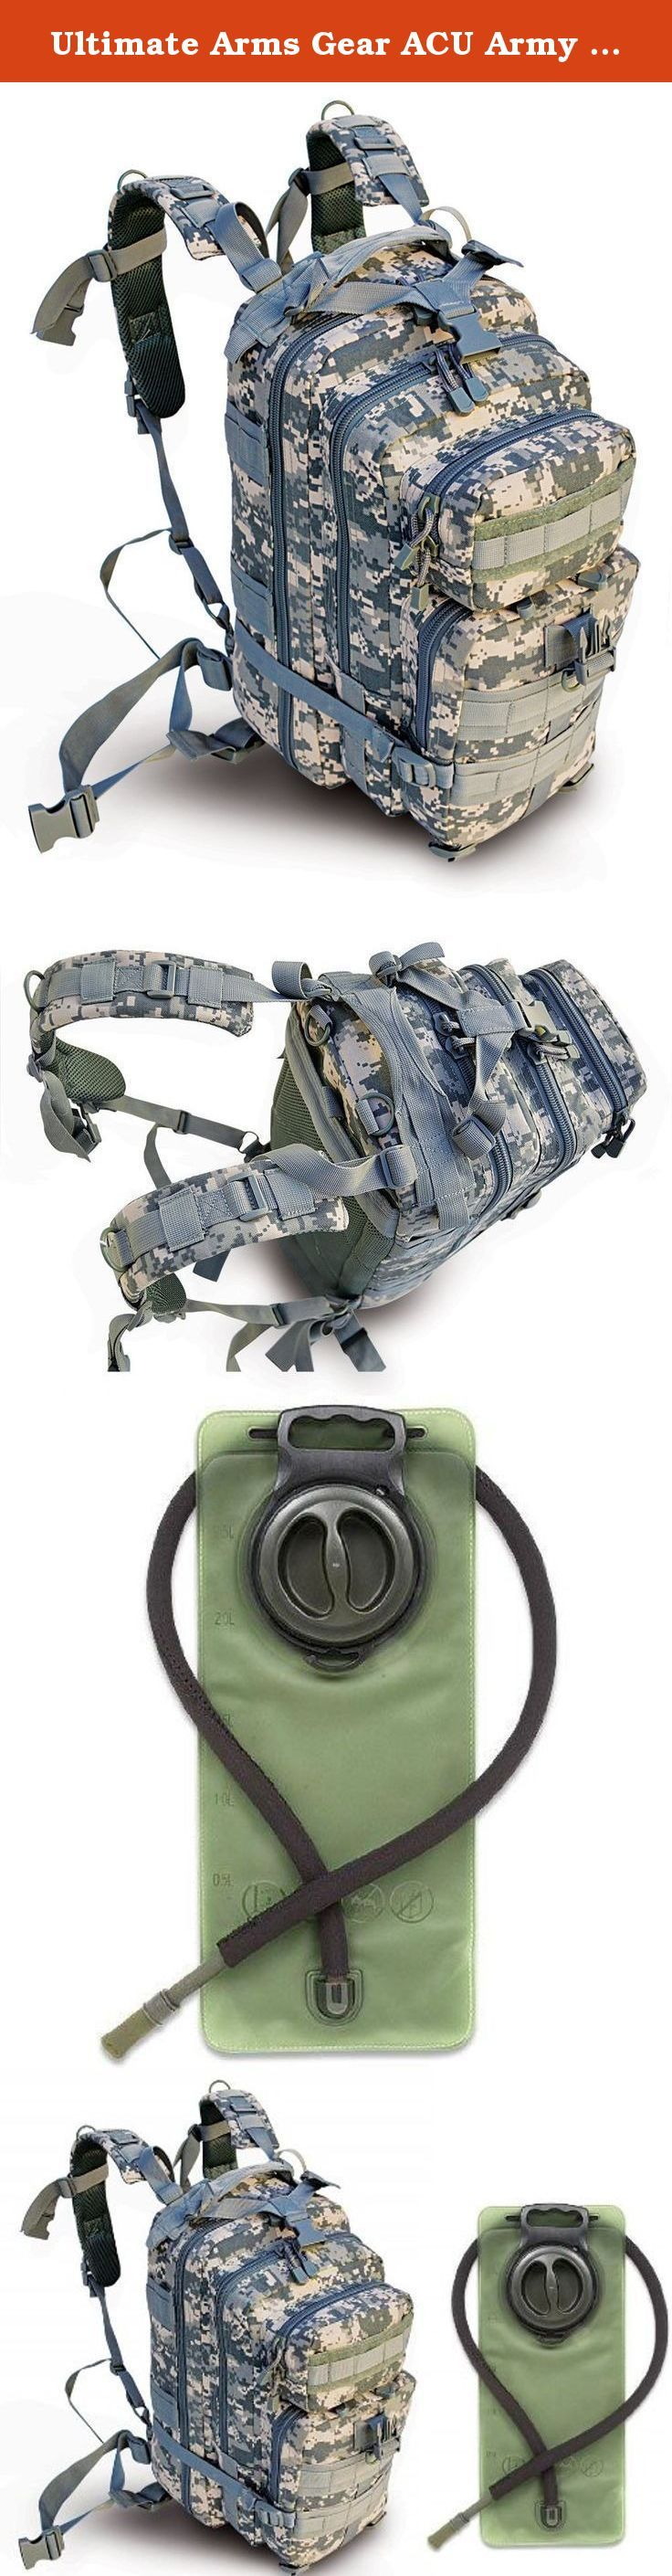 """Ultimate Arms Gear ACU Army Digital Camouflage Heavy Duty Combat Multi-Functional Equipment Survival Assault Transport Medium 17"""" Bug-Out Bag BackPack with Adjustable Slip Shoulder Detachable Length Straps MOLLE System Shooting Range Military Hunting Camping Law Enforcement Gear Rucksack Pack AMB3 + OD Olive Drab Green 2.5 Liter / 84 oz. Replacement Hydration Backpack Water Bladder Reservoir - Includes Hosing And Hands Free Bite Valve. Official Product of Ultimate Arms Gear, Brand…"""